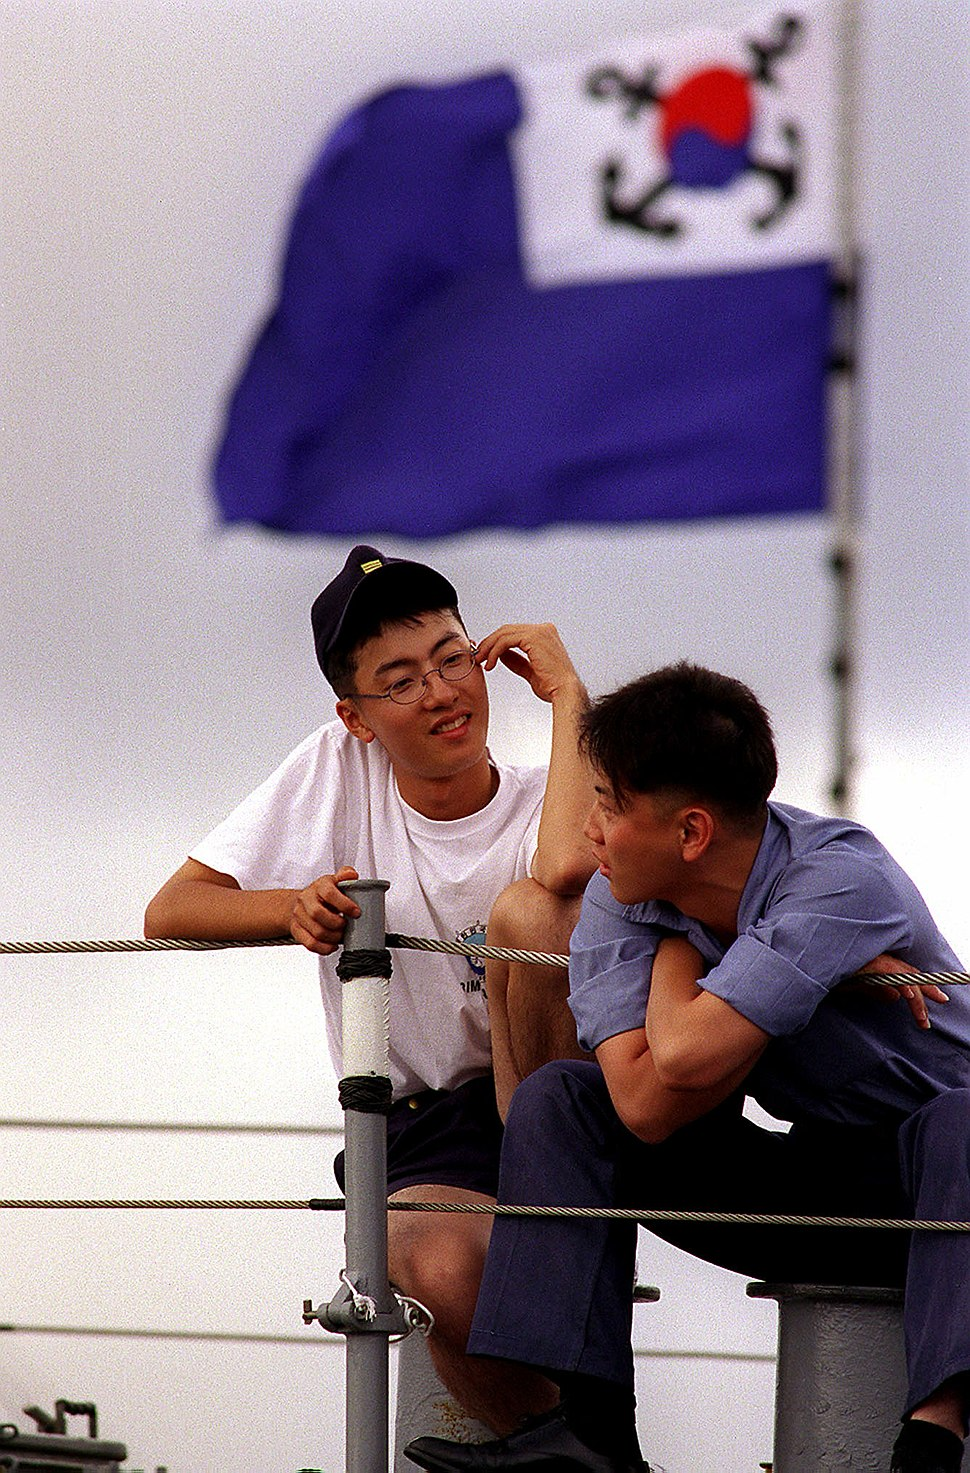 Two Republic of Korea Navy sailors find the time to relax RIMPAC 980708-N-2619S-002